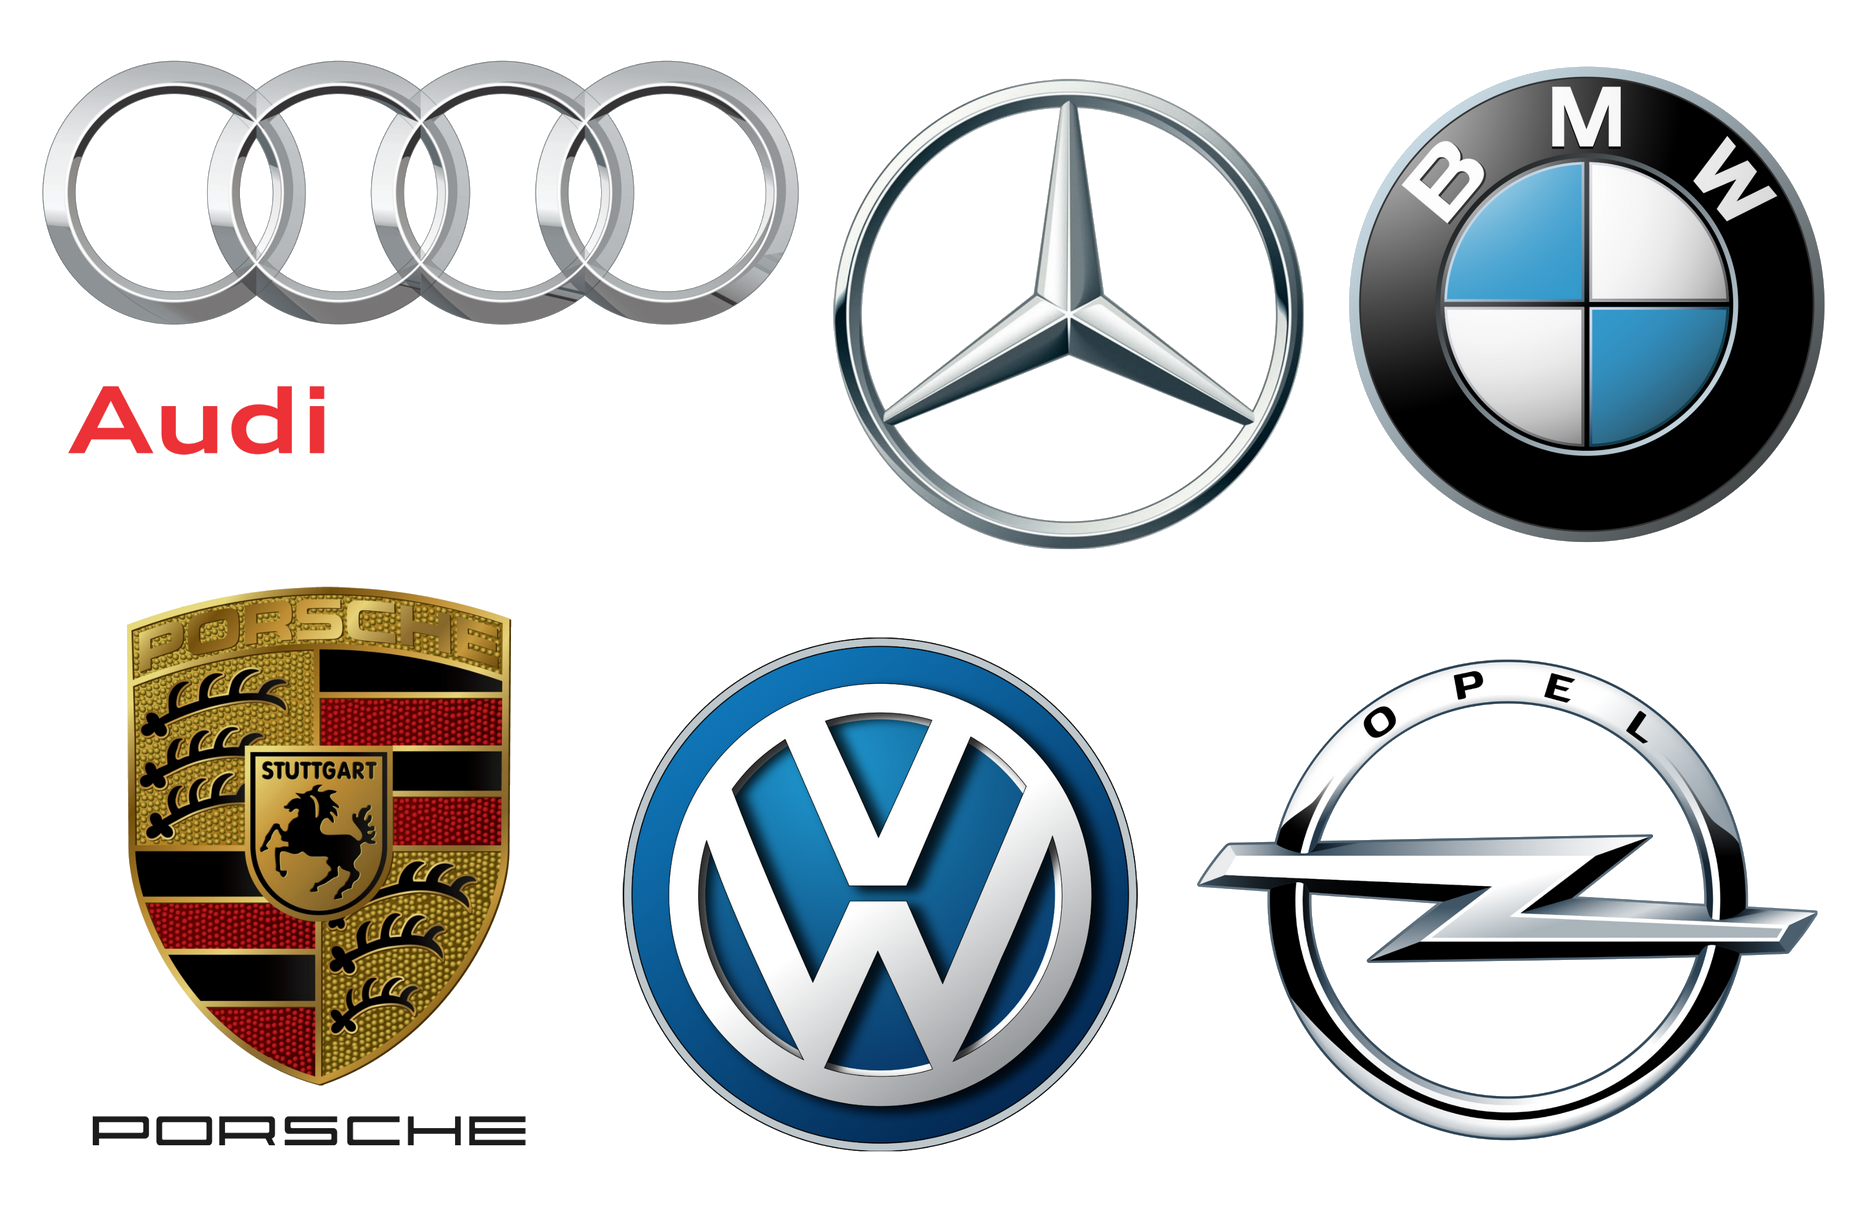 German Car Brands Companies And Manufacturers Car Brand